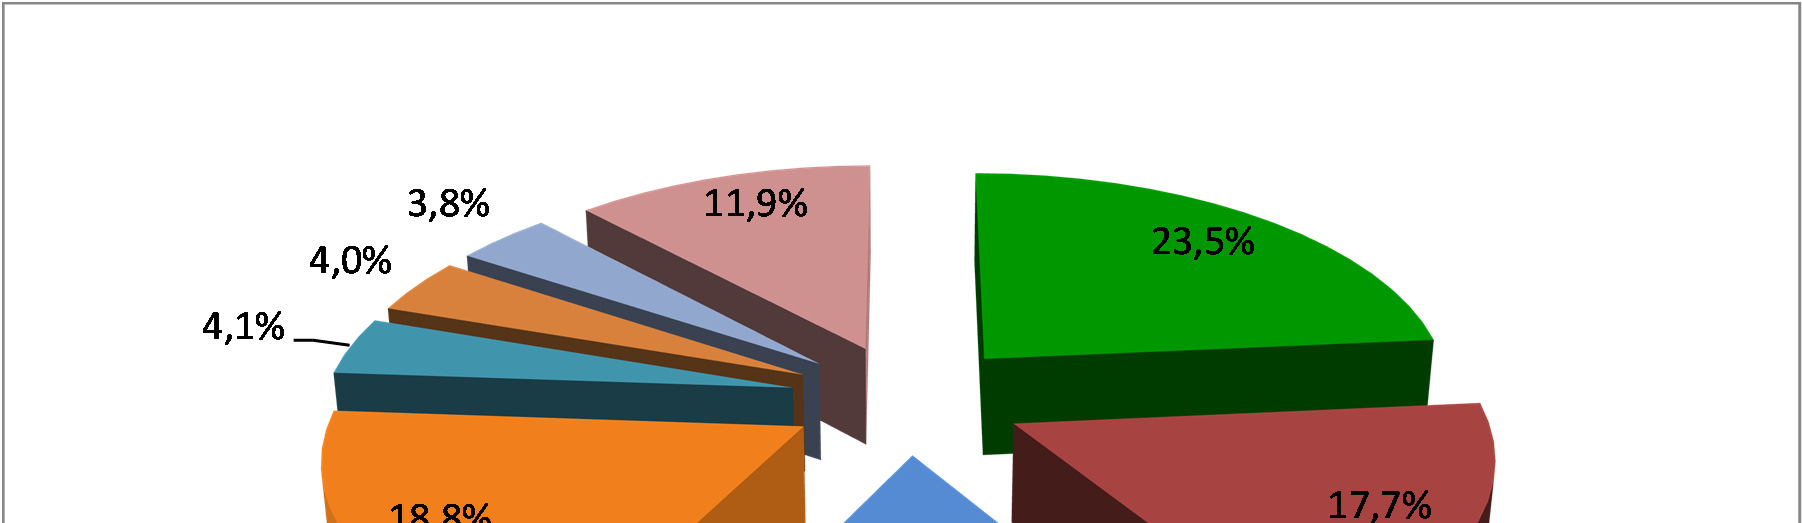 MARKET SHARE TOTAL YEAR 2012 OPERATIONAL LEASING +